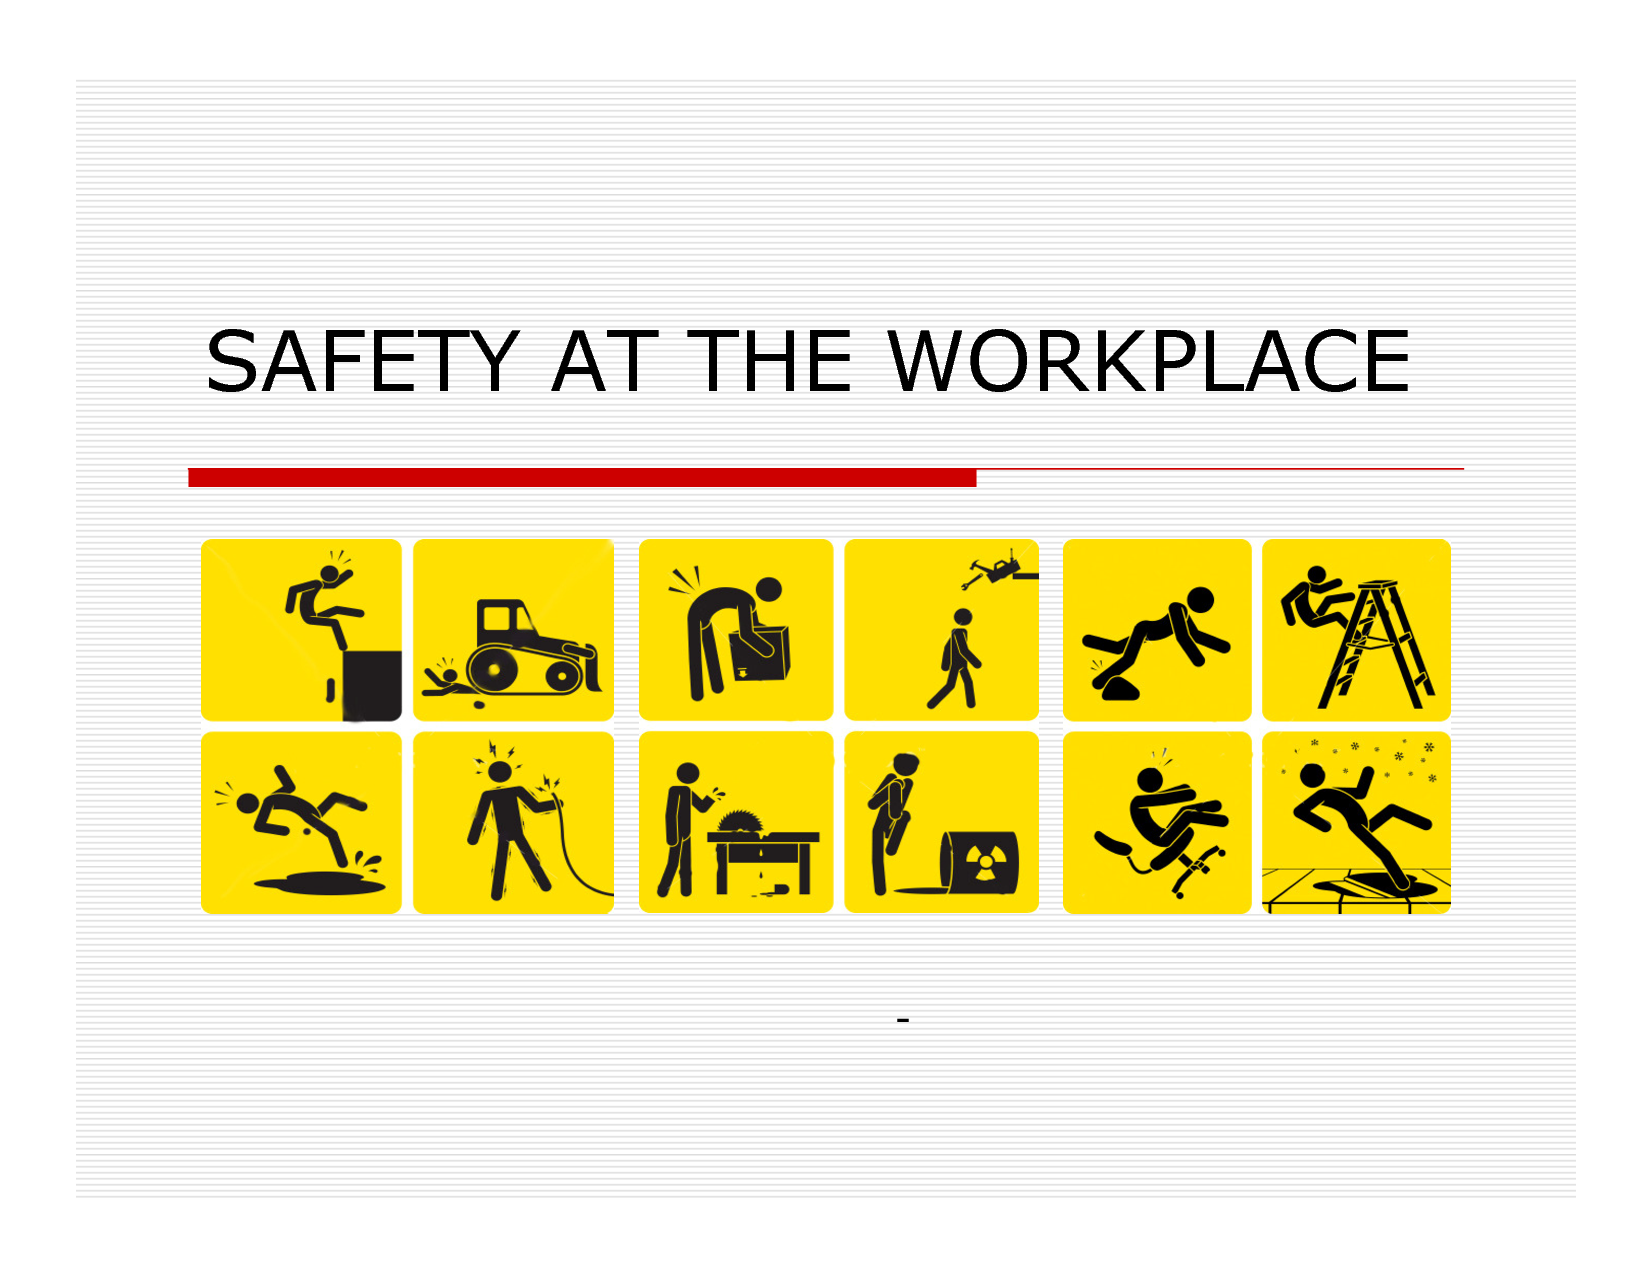 The importance of ladder safety and safe working environment for workers